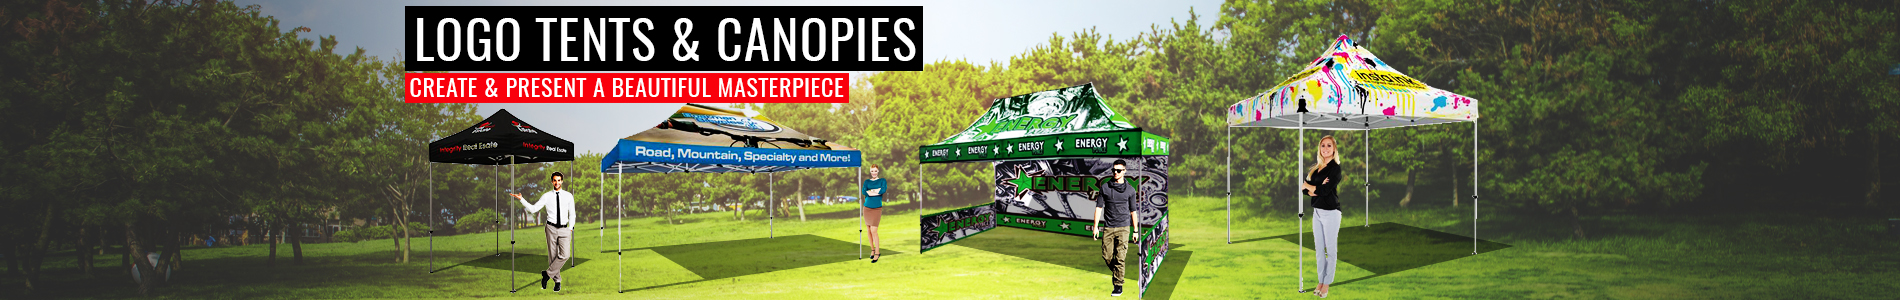 Logo Tents and Canopies